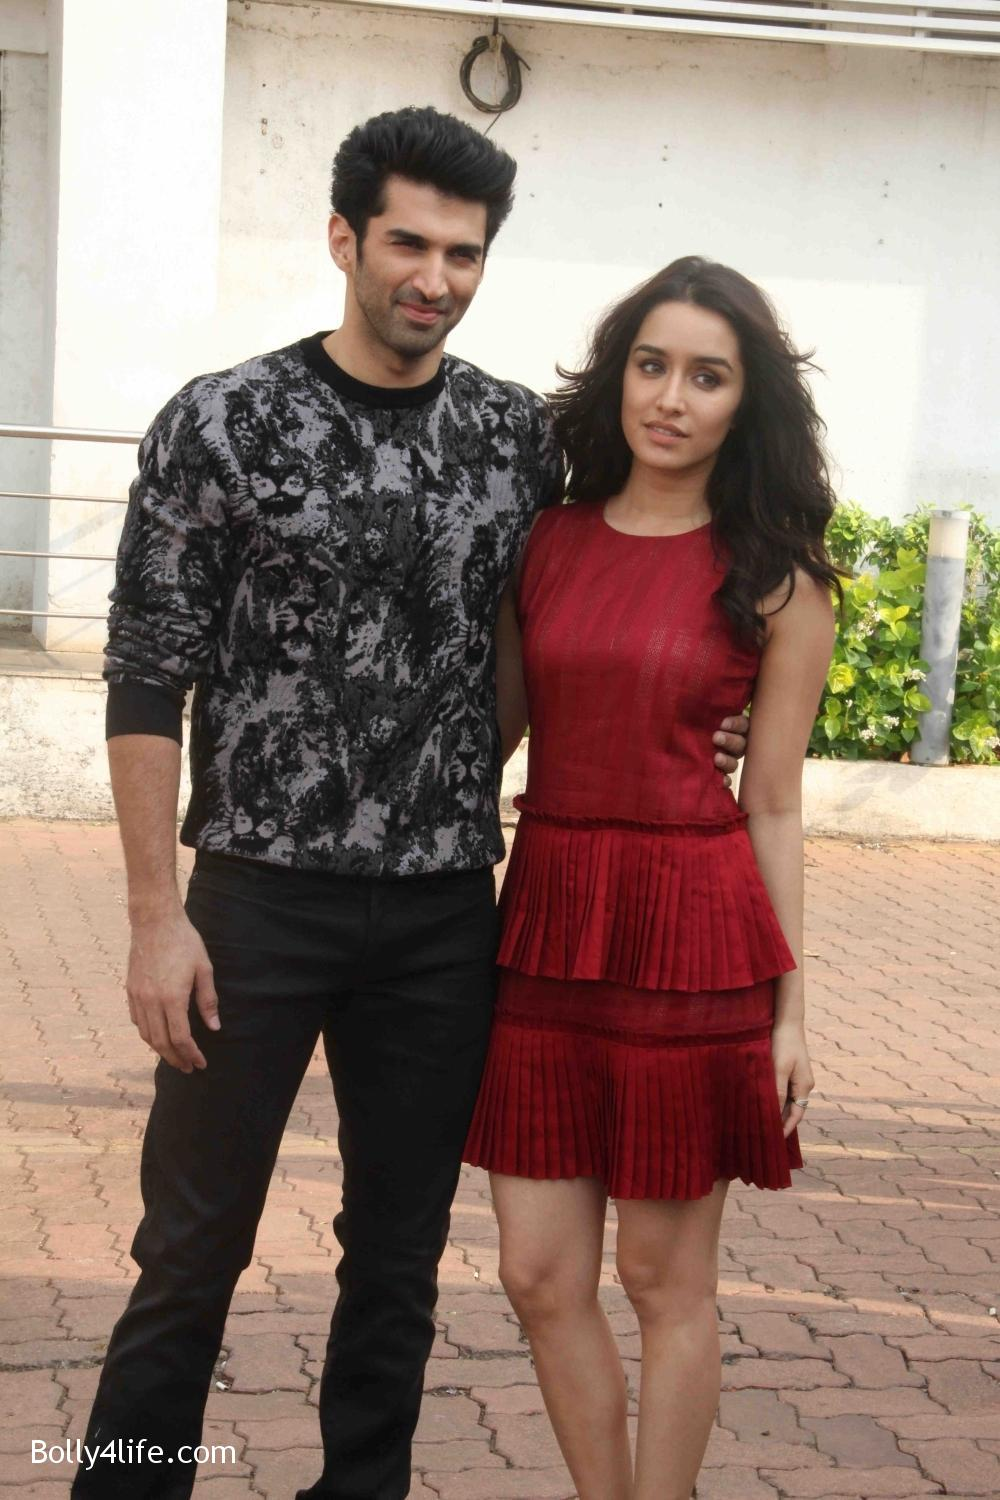 Aditya-Roy-Kapur-and-Shraddha-Kapoor-during-the-promotion-of-film-Ok-Jaanu-on-the-sets-Star-Plus-singing-reality-show-Dil-Hai-Hindustani-15.jpg